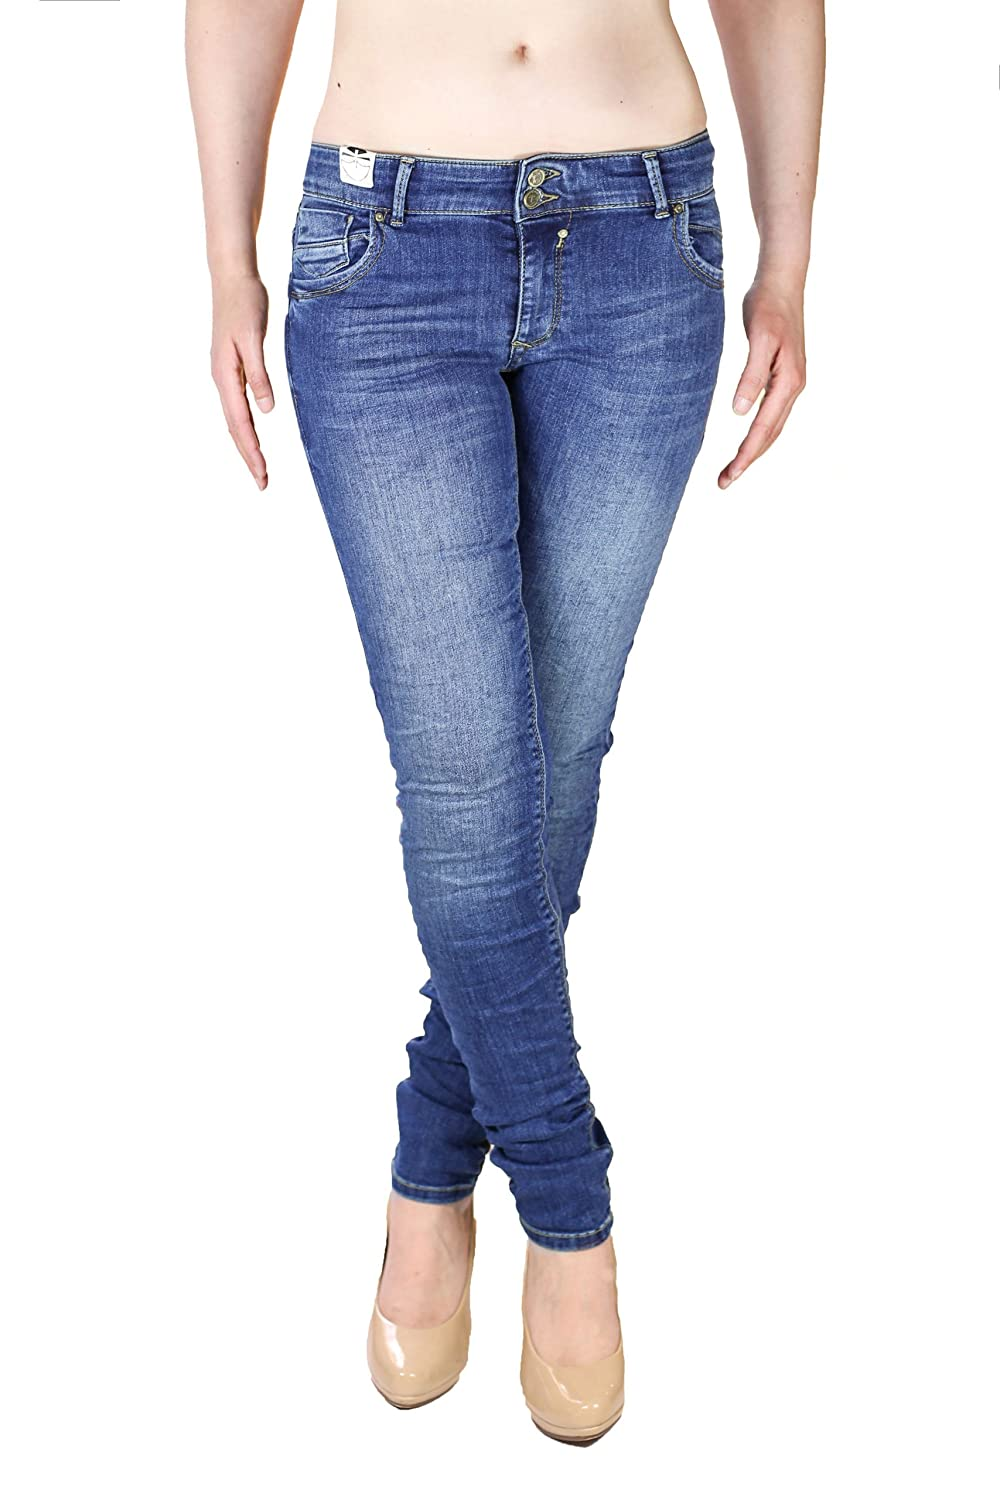 Coccara Damen Jeans Slim Fit Bella Denim dark blue